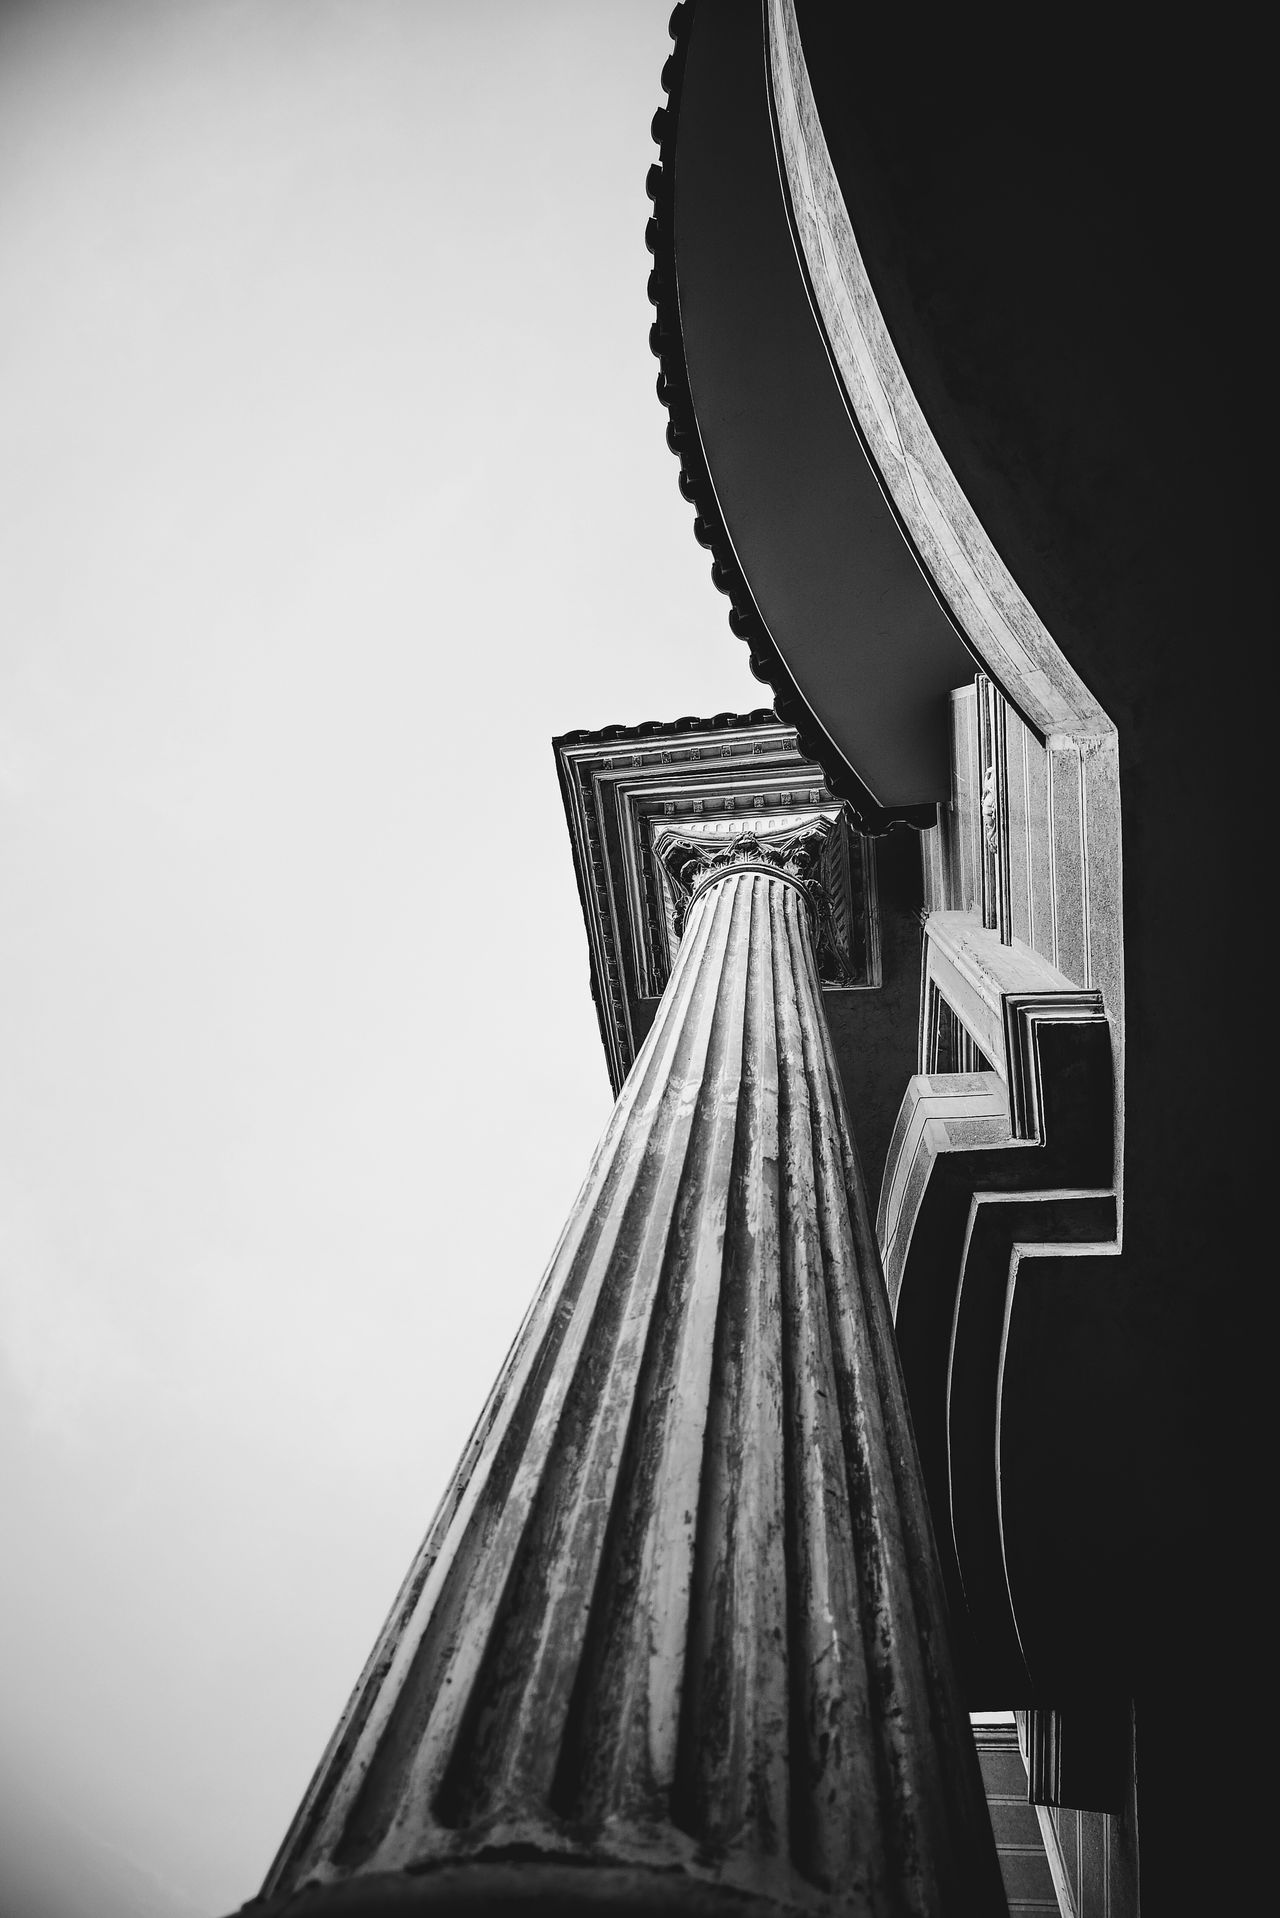 Architectural Feature Architecture Black And White Blackandwhite Bnw_architecturelines Pivotal Ideas Building Building Exterior Built Structure Clear Sky Curves And Lines Diminishing Perspective Eye4photography  Fine Art Photography High Section Low Angle View Monochrome No People Plastering Railing Spirituality Decoration Romanian Pillar Gypsum Fine Art Photograhy